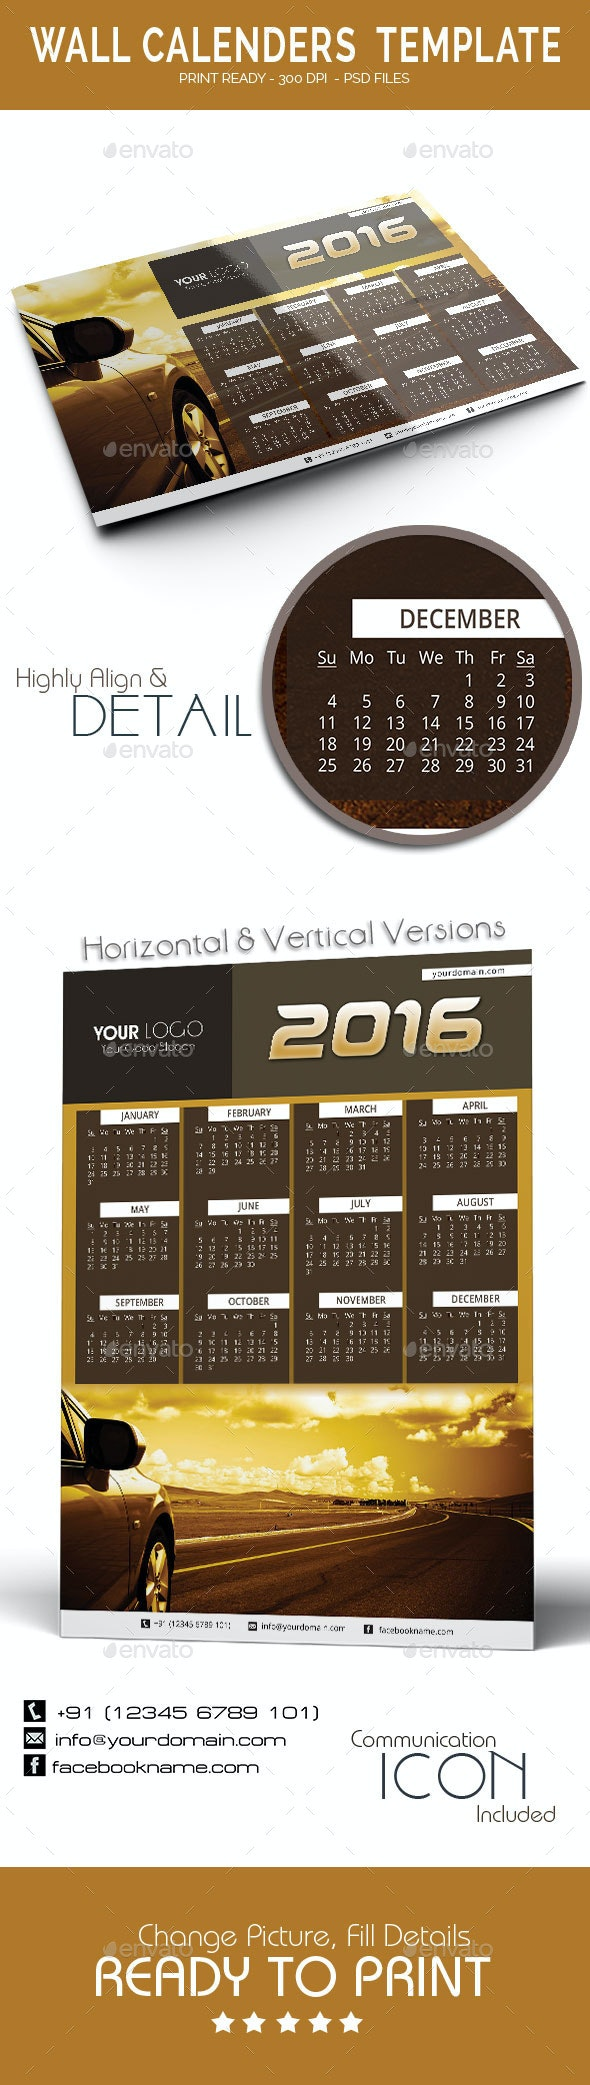 Calenders Templates 2016 - Calendars Stationery